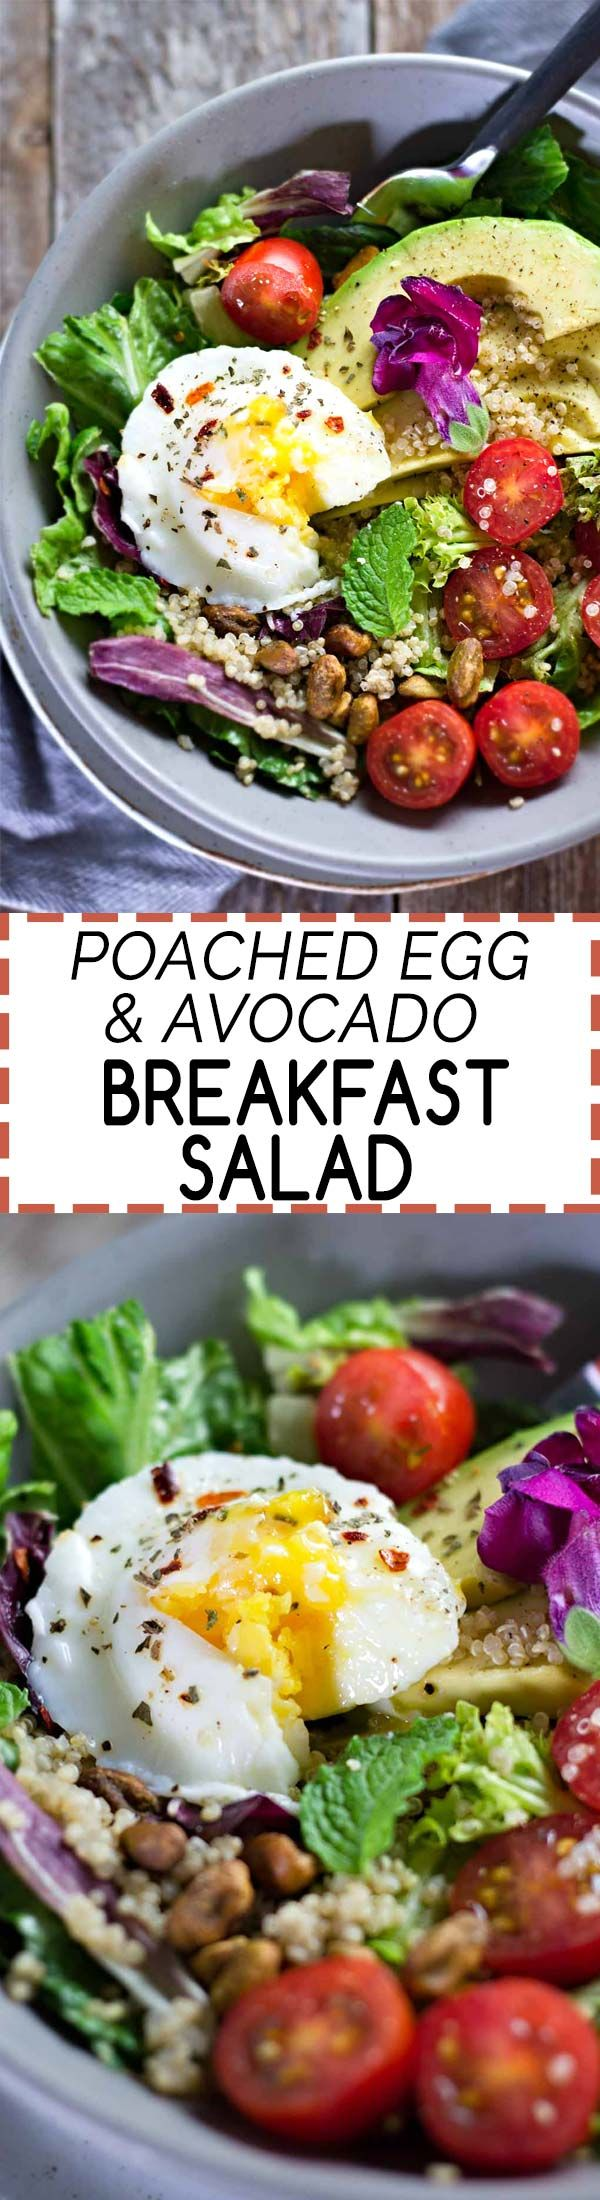 Poached Egg & Avocado Breakfast Salad! Deliciously healthy and only takes 10 minutes to make ;) {Gluten-Free}